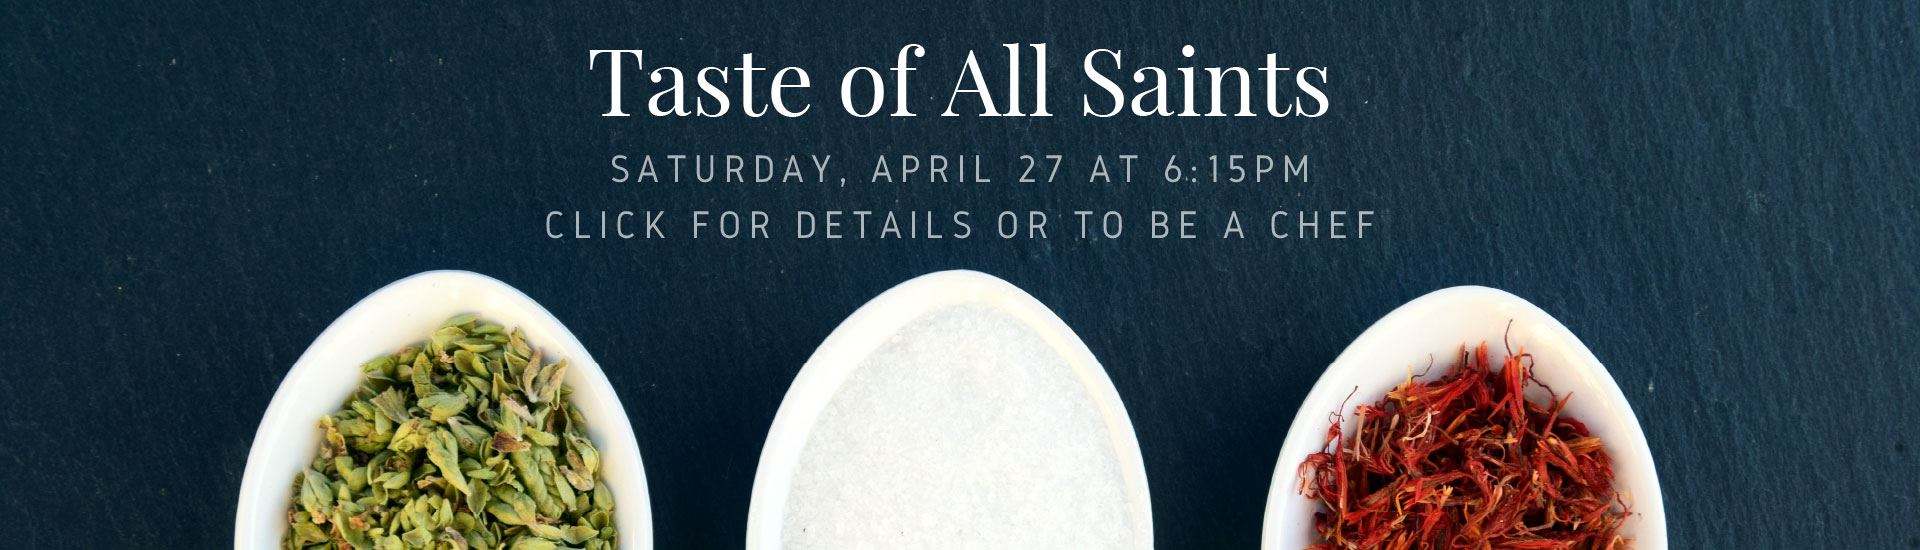 Taste of All Saints banner 2019